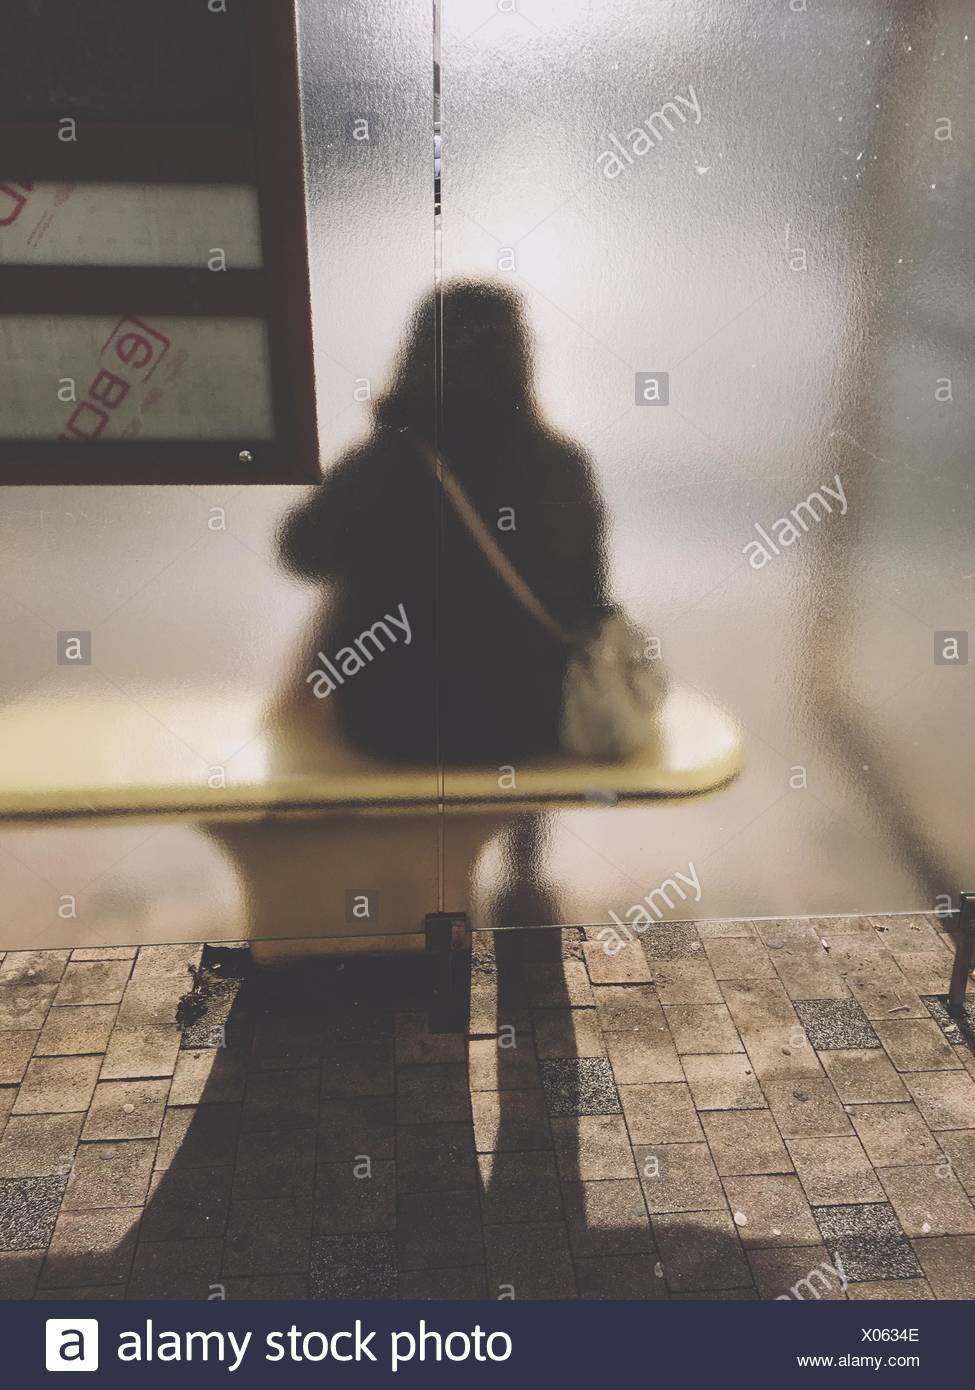 Rear View Of Person Sitting On Bench Seen Through Frosted Glass Window - Stock Image